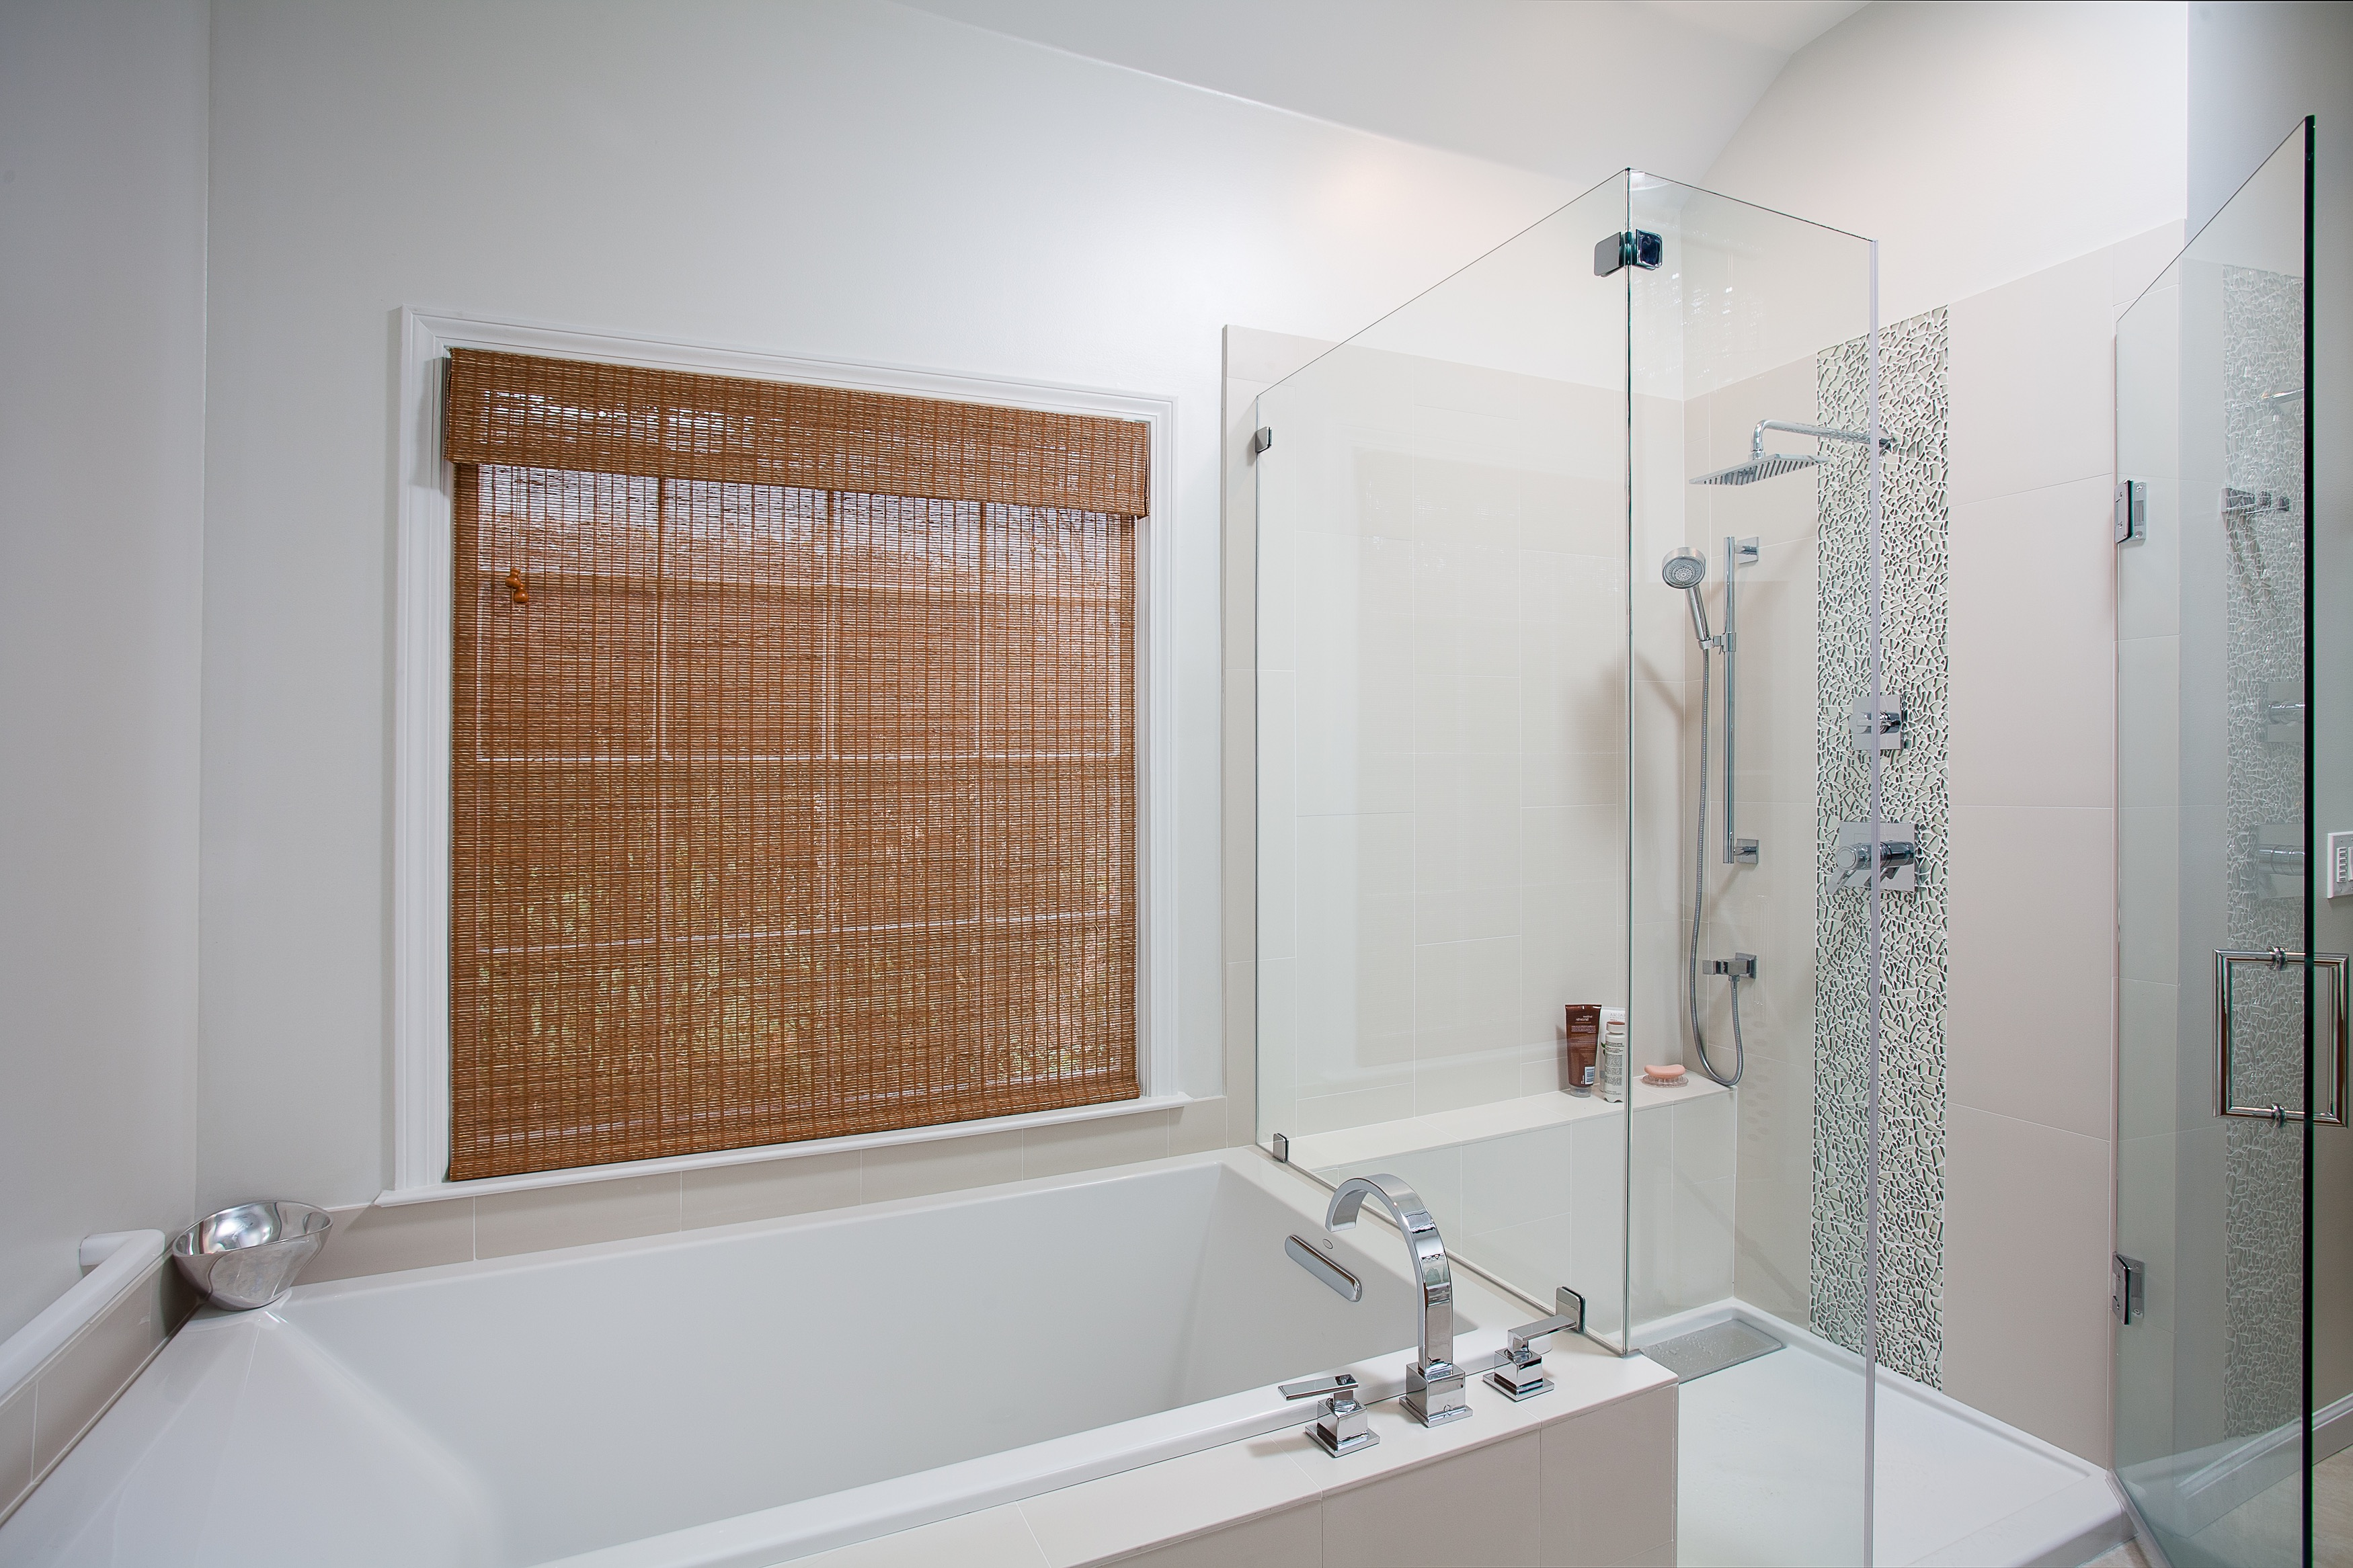 Contemporary White Bathroom With Tub And Glass Enclosed Shower Combo (Image 7 of 19)